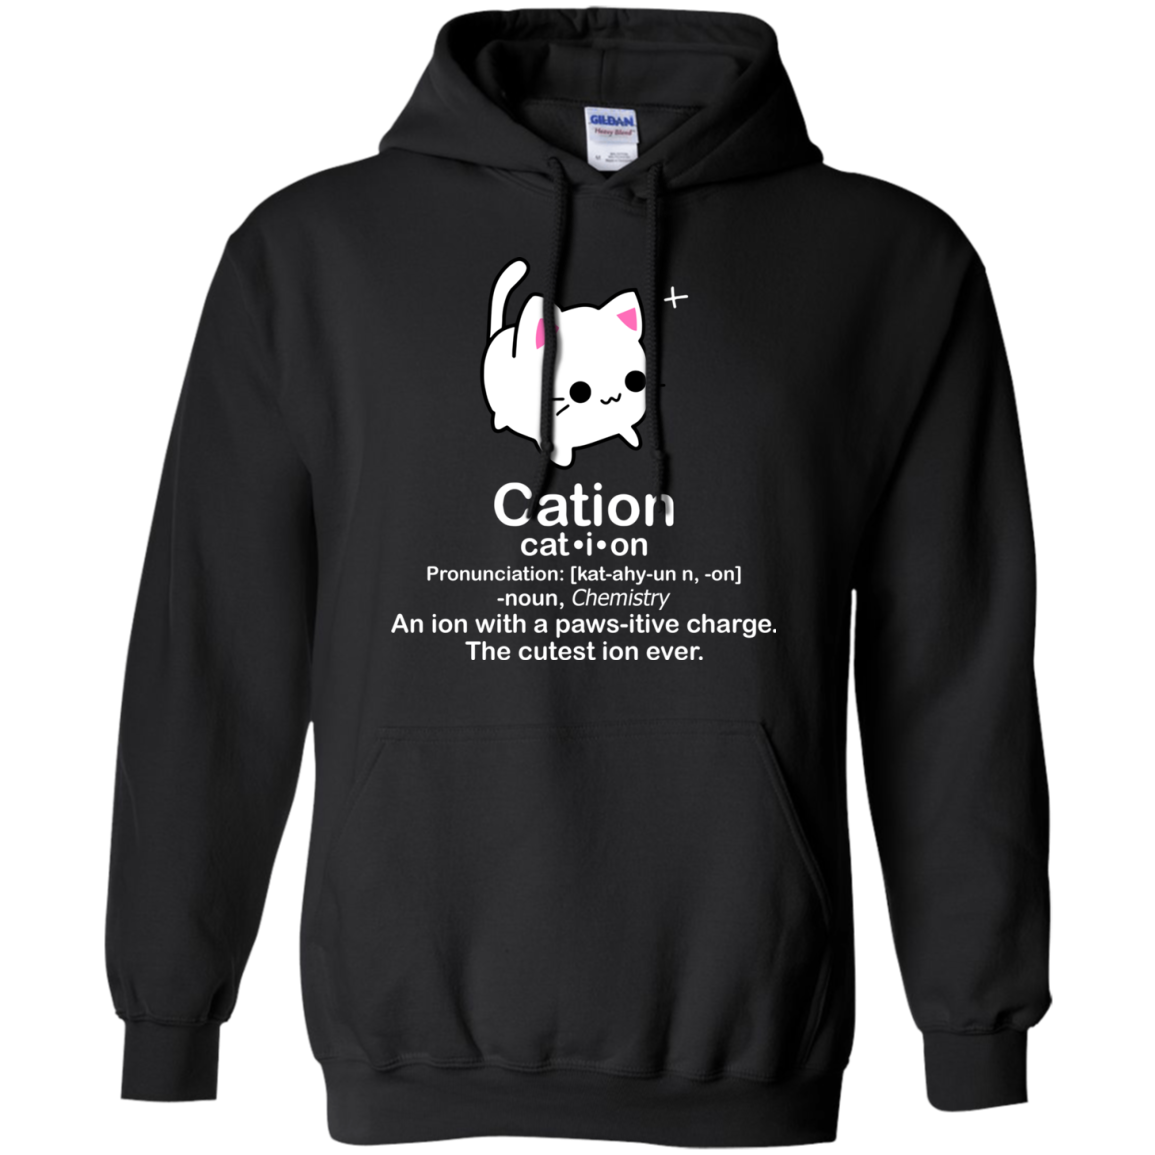 Cation Means Cat And Cation Xmas Hoodie Unisex Gift Ideas Ngan97